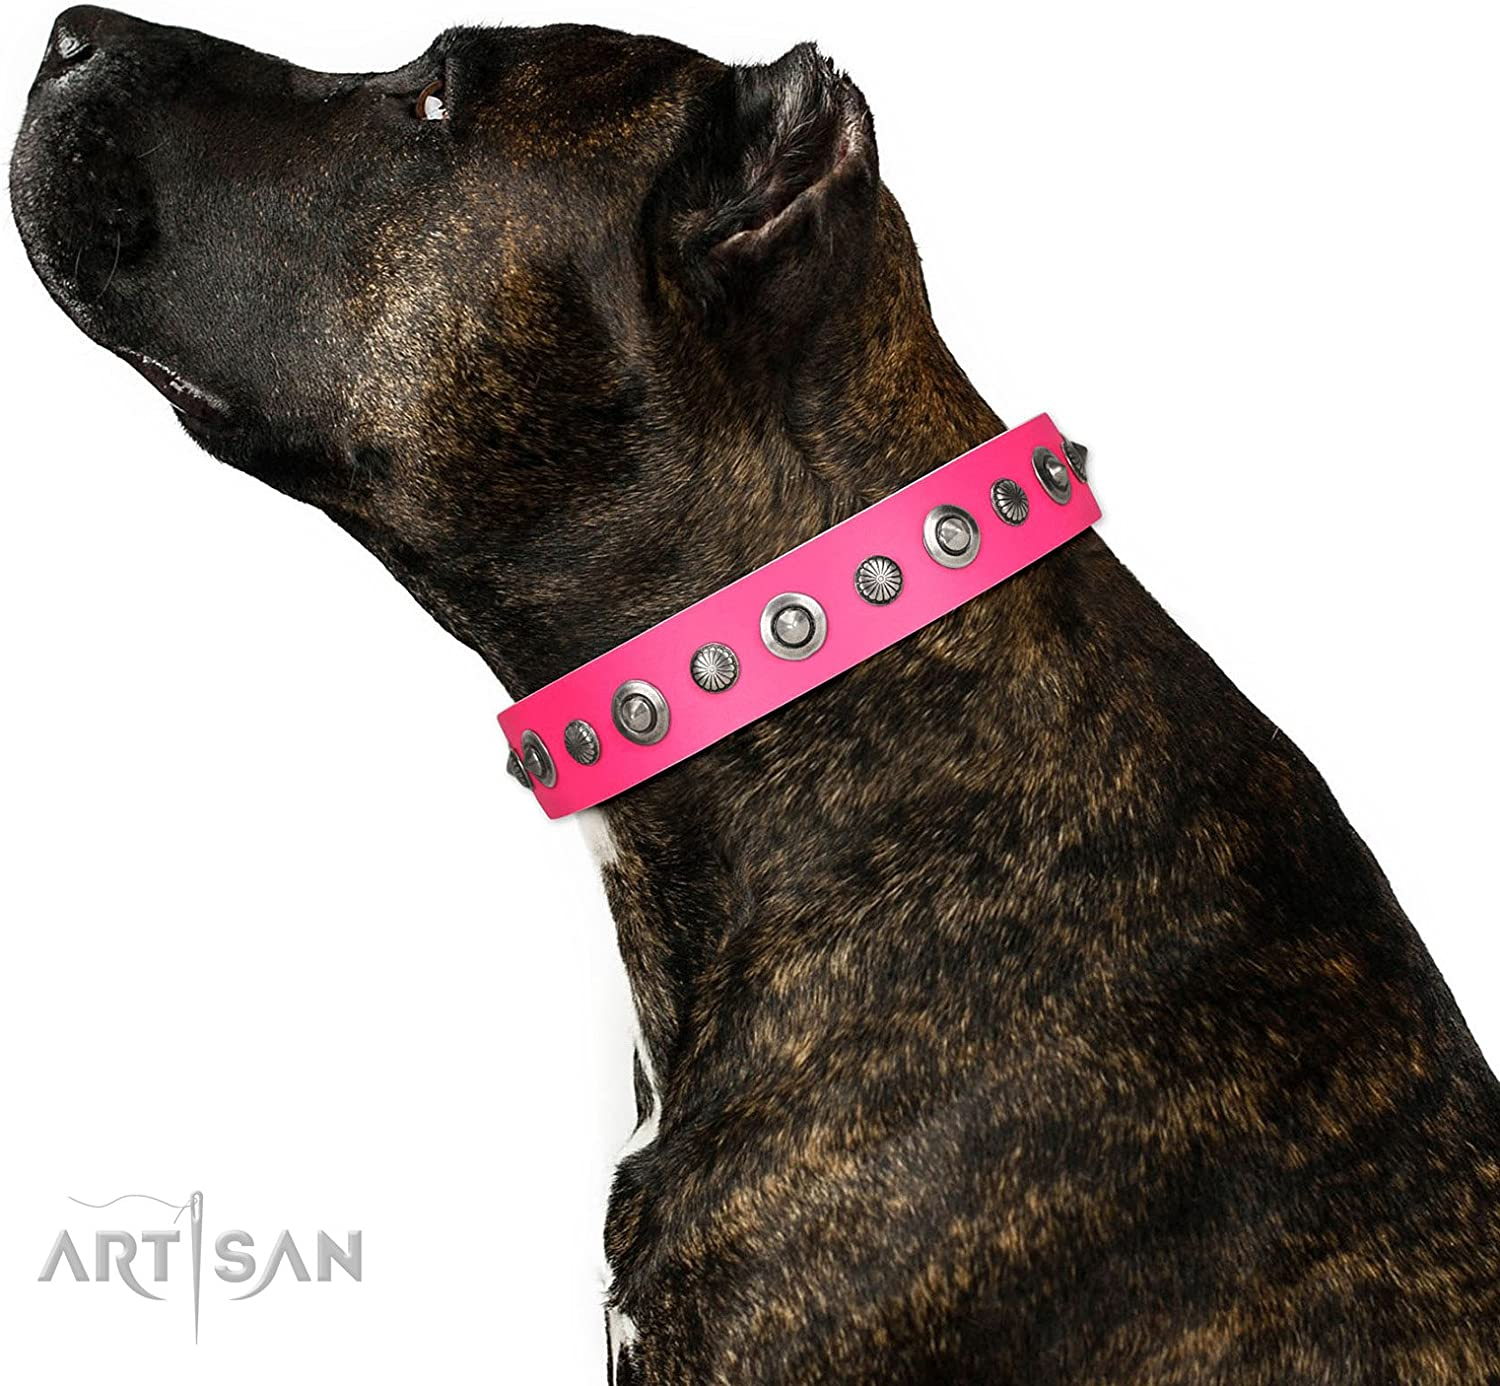 FDT Artisan 32 inch Pink Leather Dog Collar  Gorgeous Roundie  Exclusive Handcrafted Item  1 1 2 inch (40 mm) Wide  Gift Box Included